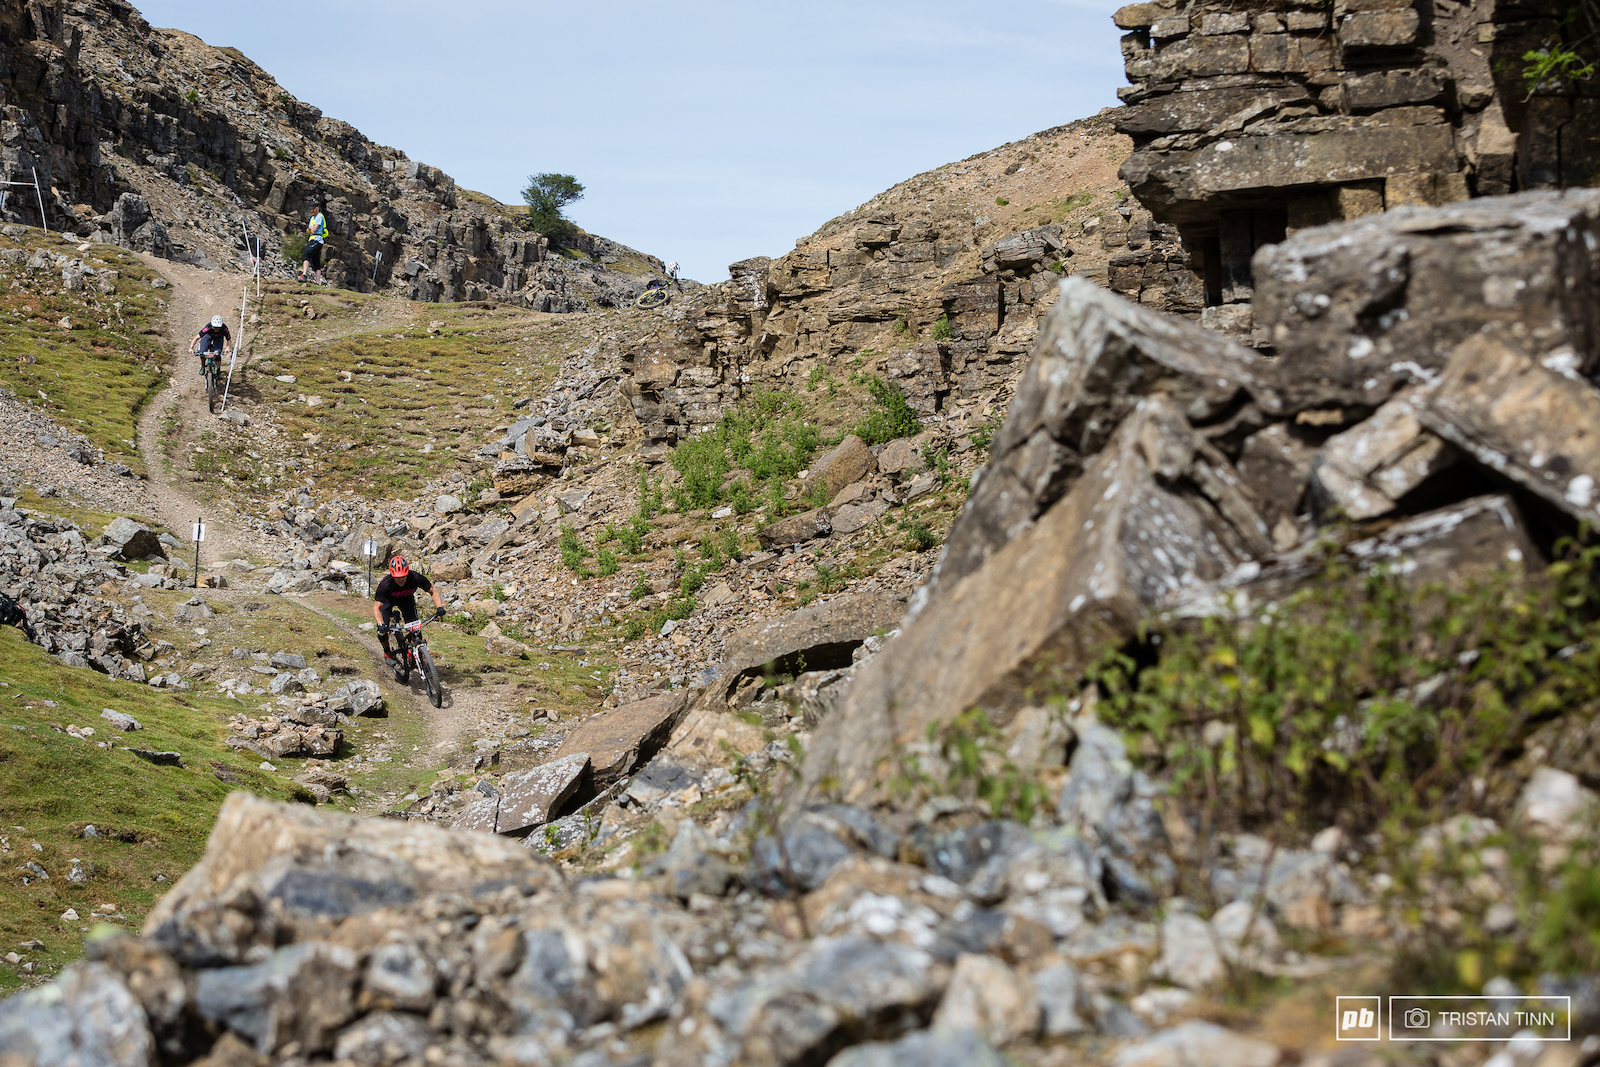 Plenty more rocks as Stage 3 cut through old mine workings